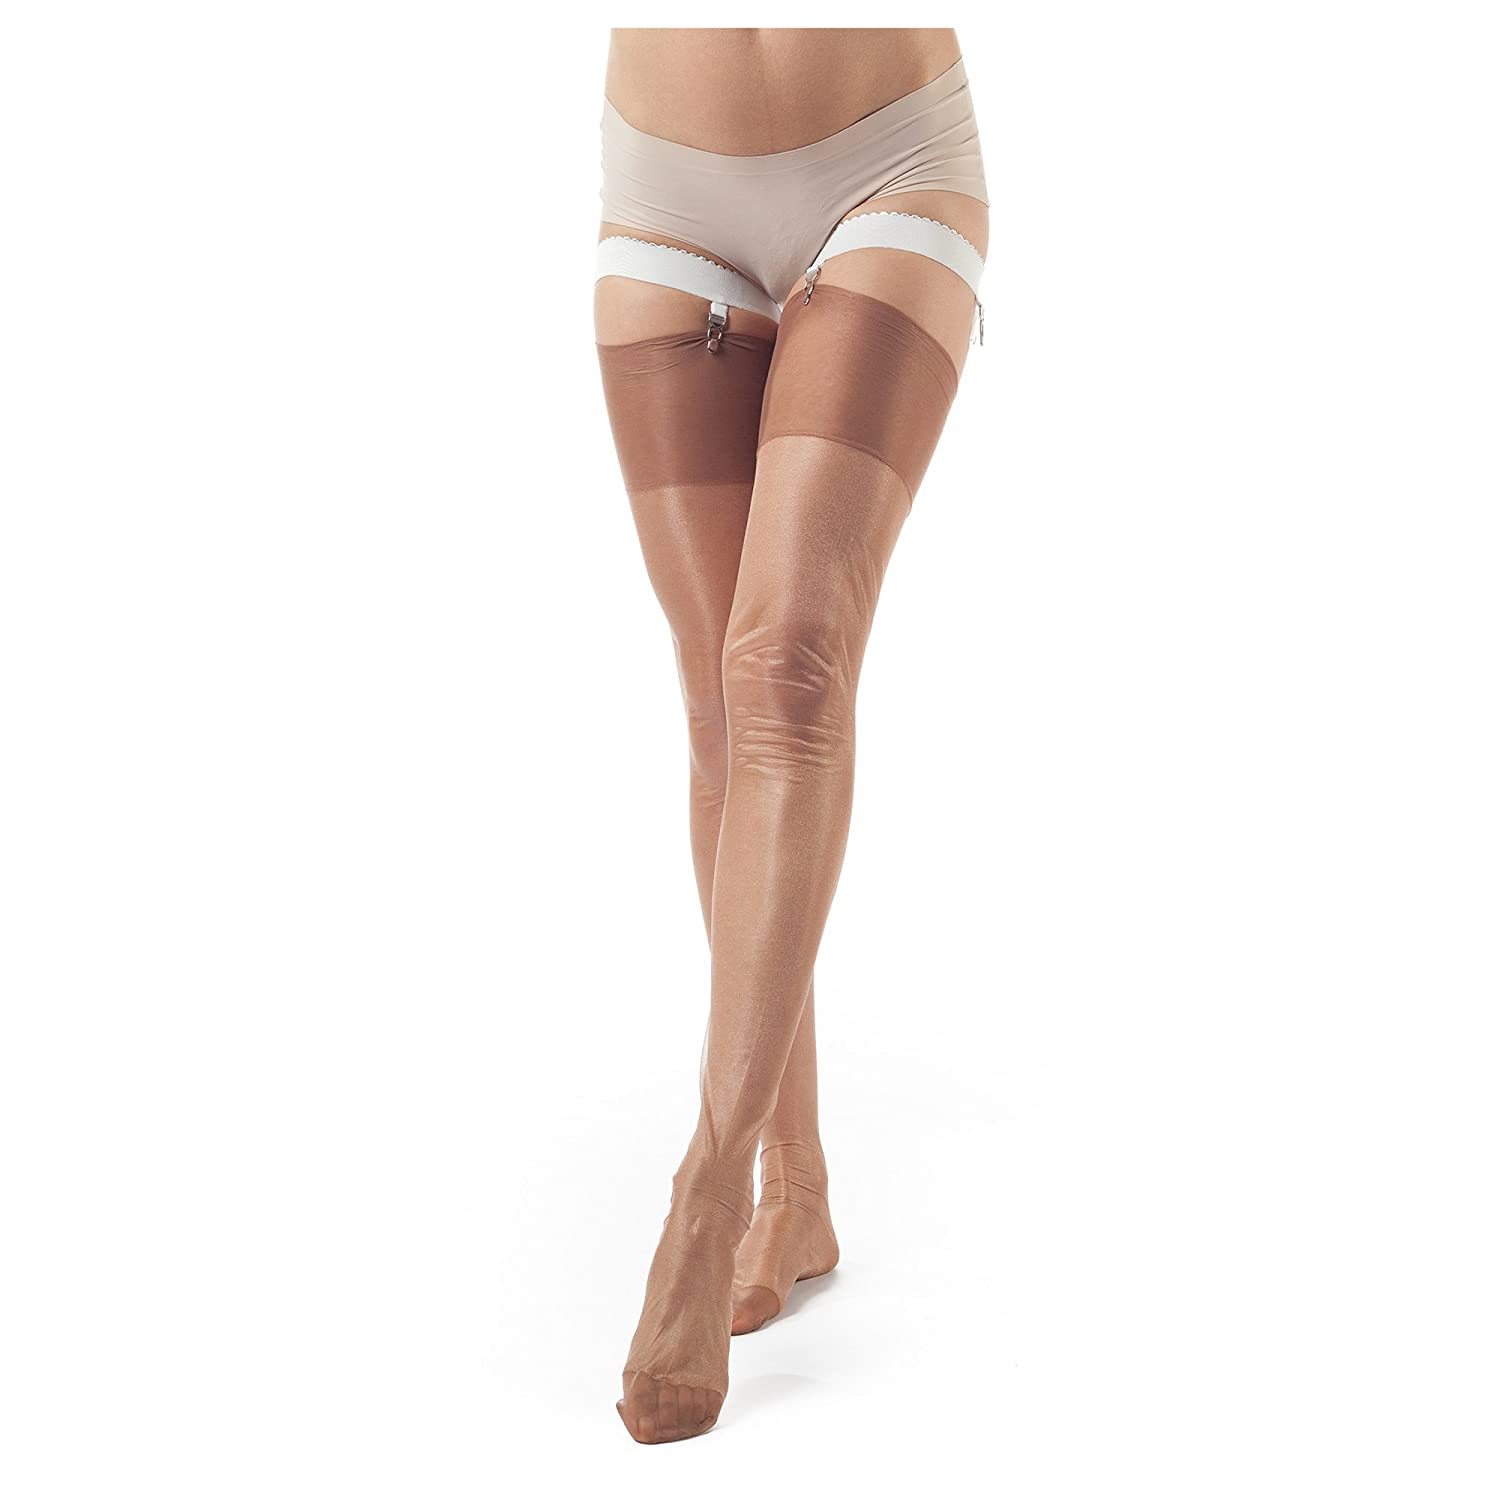 ElsaYX Women's Classic Pure Nylon Glossy Thigh High Stockings for use with Garter Belt Lingerie